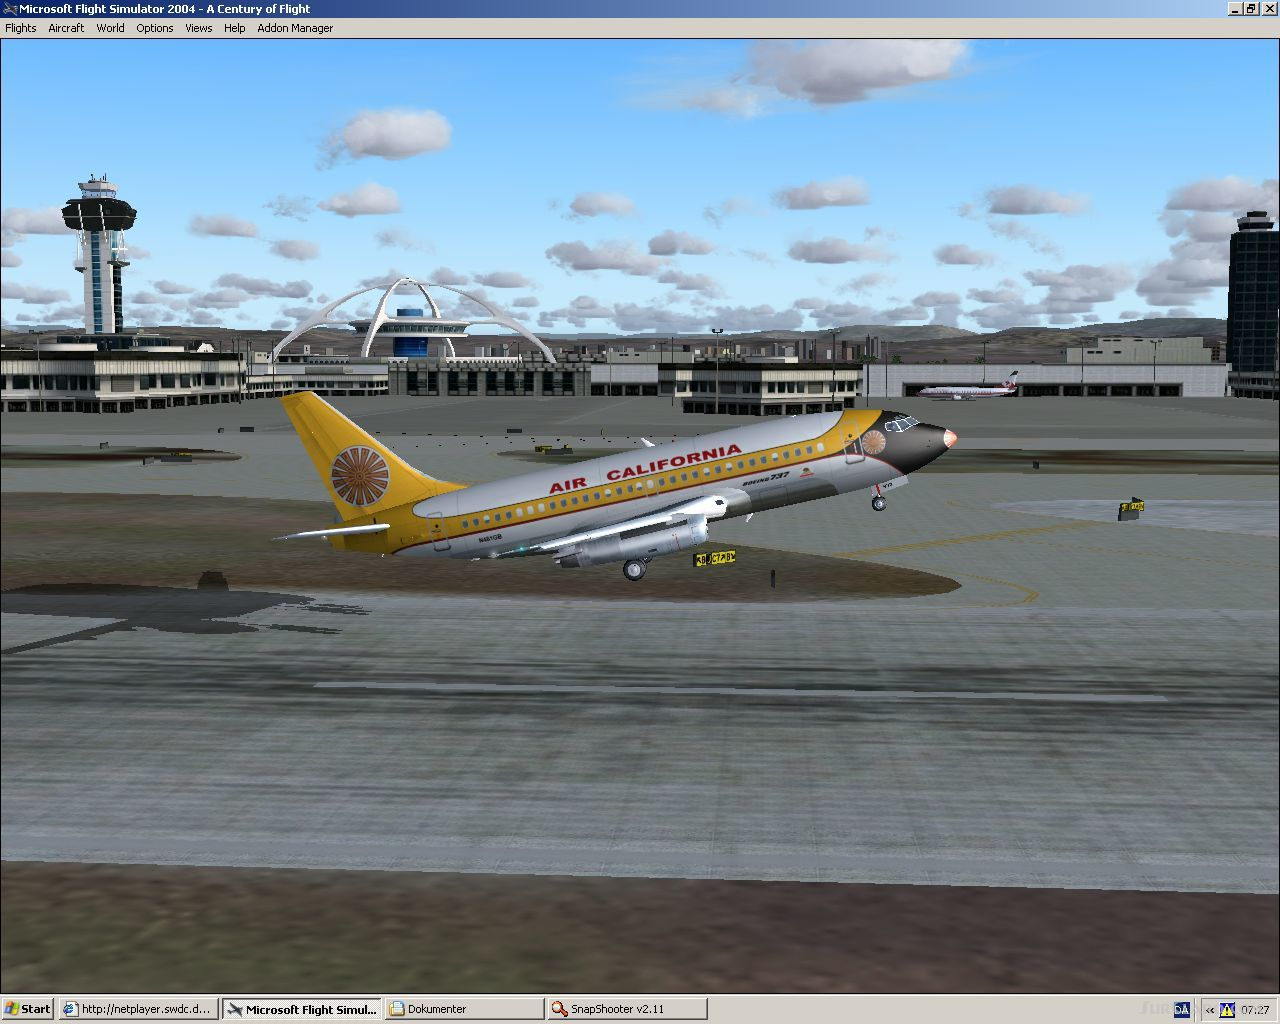 FSX FFX Boeing 737-200 Air California 1970 Model Erick Cantu